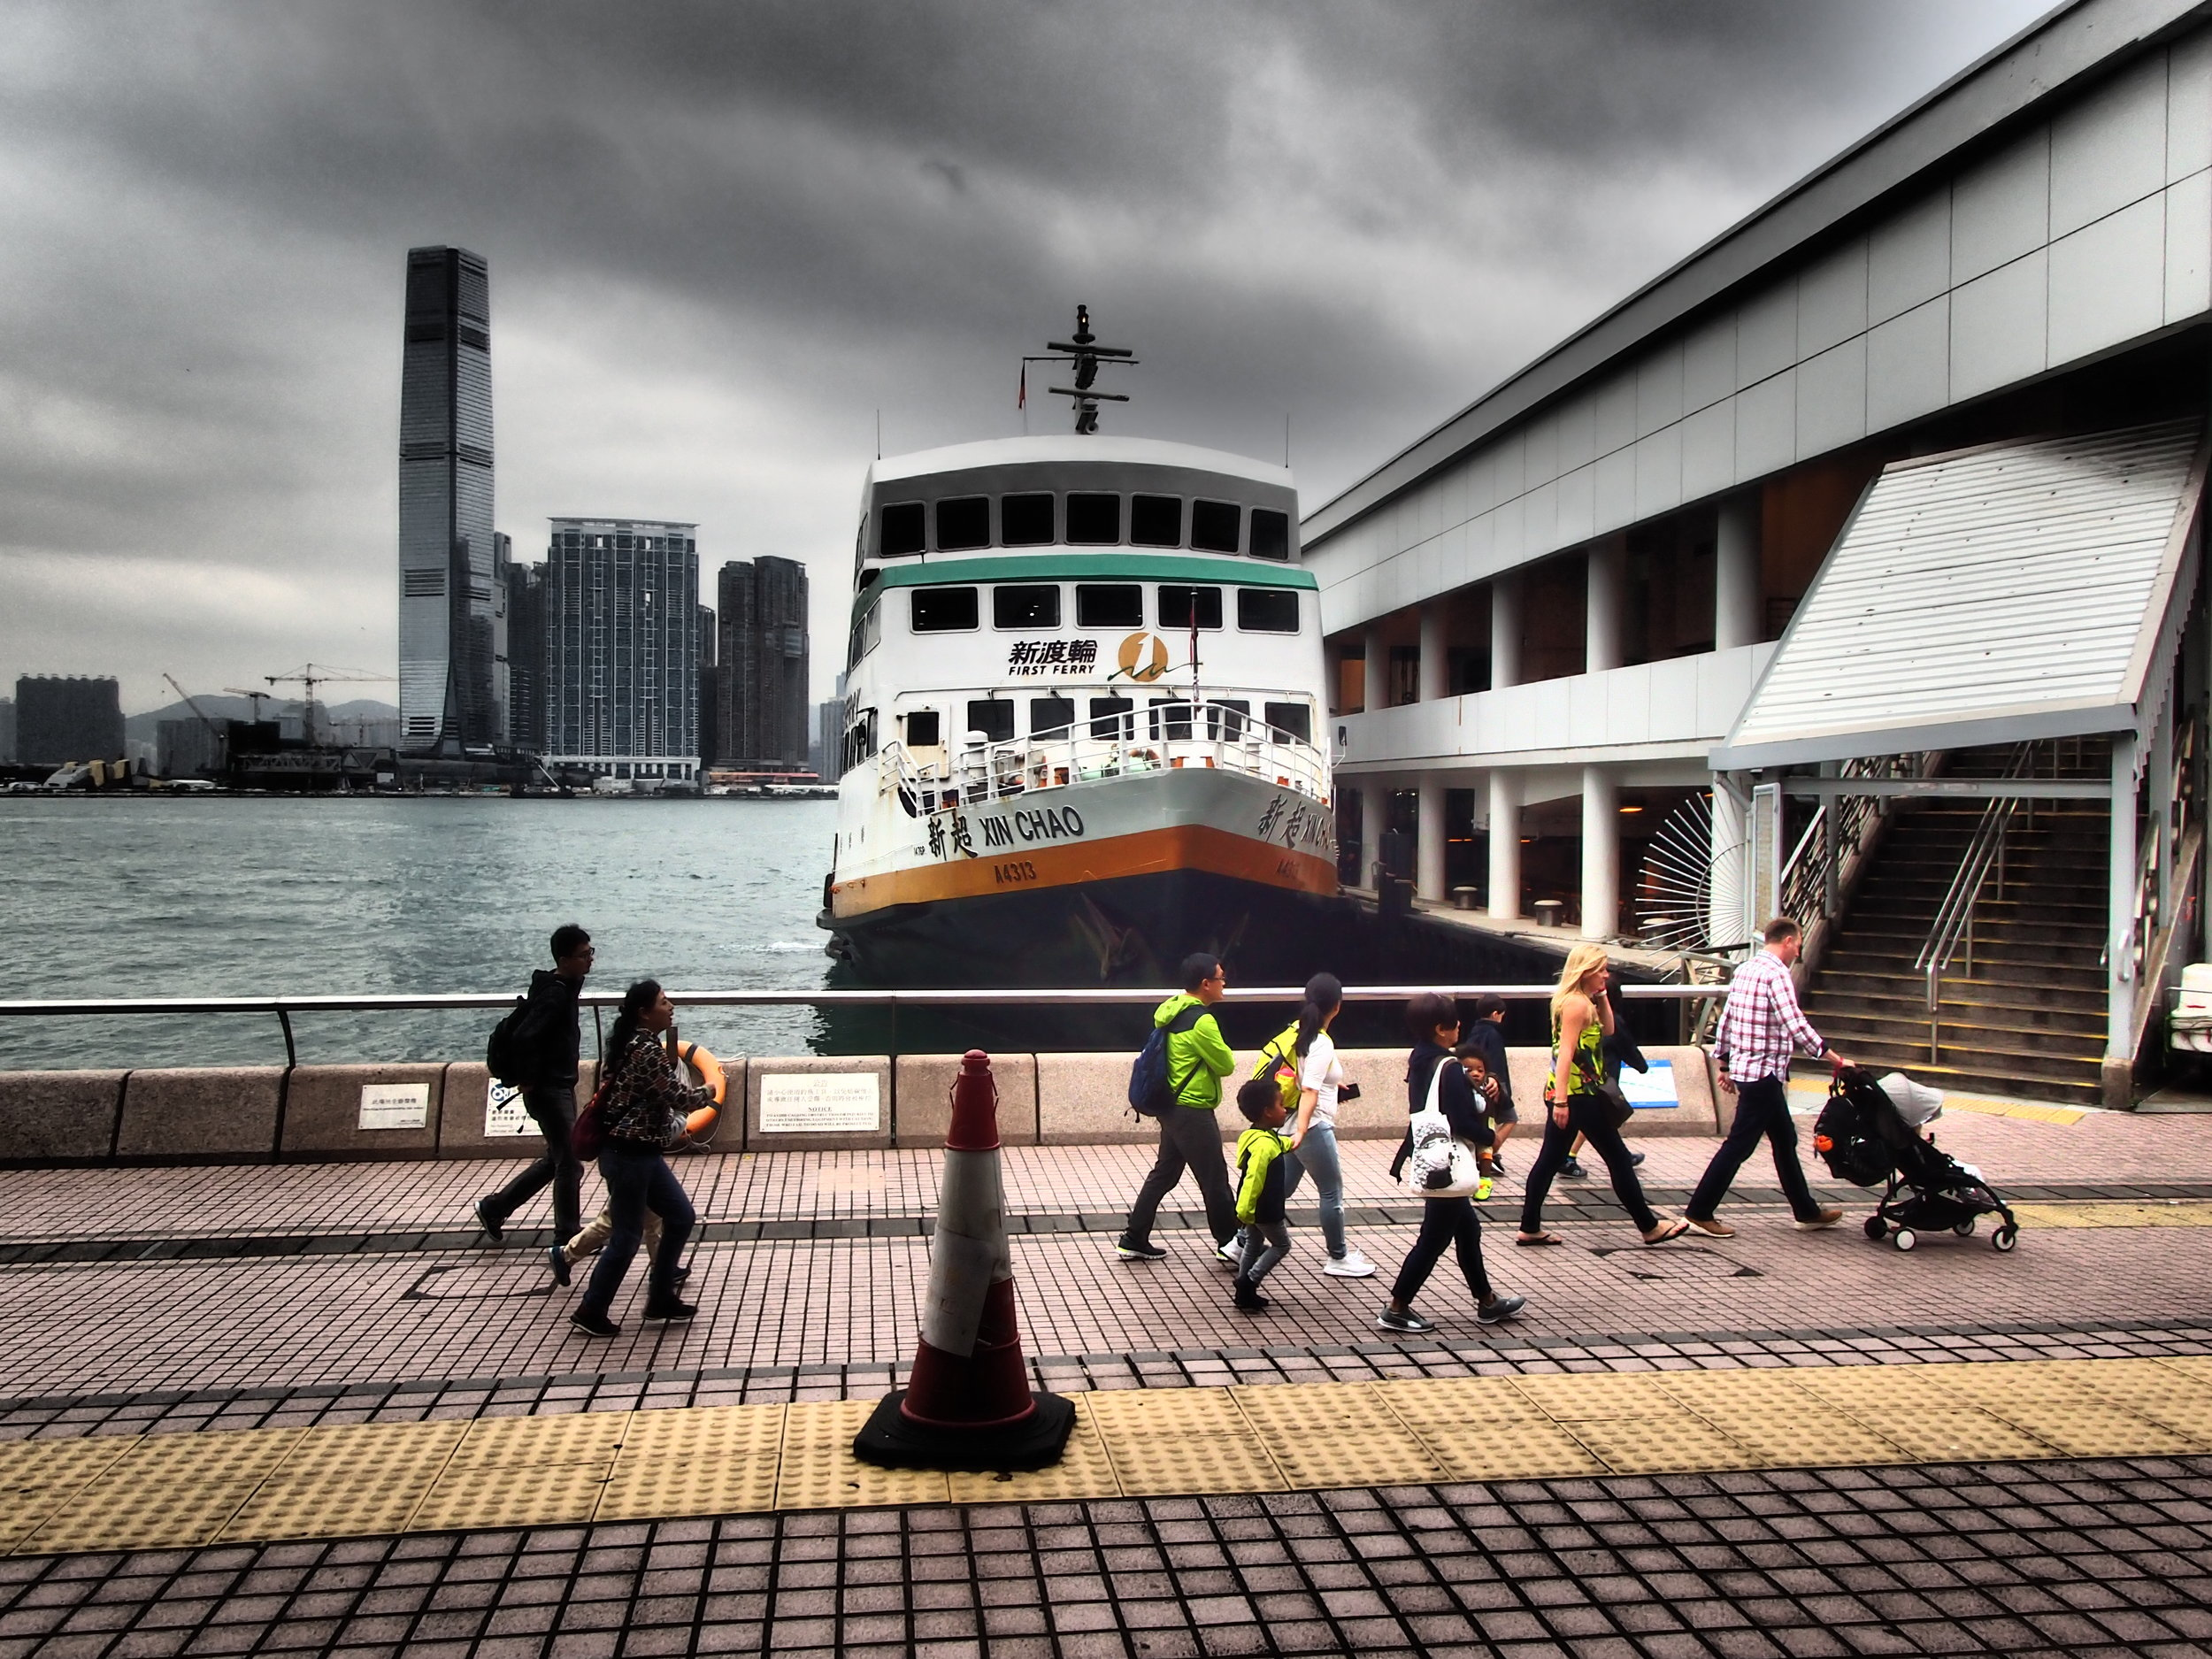 Waiting for my boat (Hong Kong Central ferry piers)